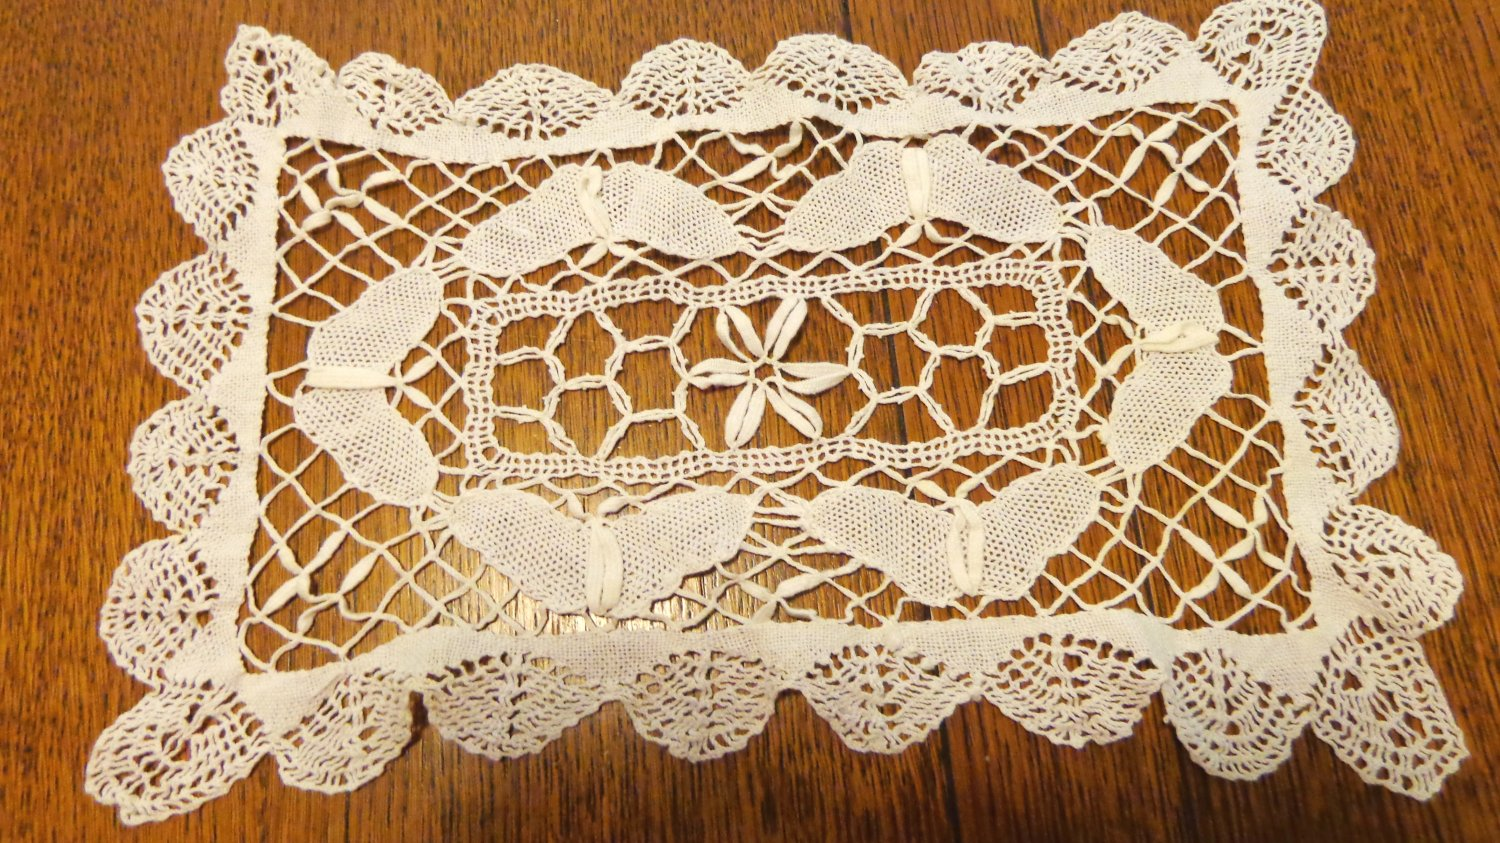 Bobbin lace doily or mat white rectangular vintage perfect handmade hc3401